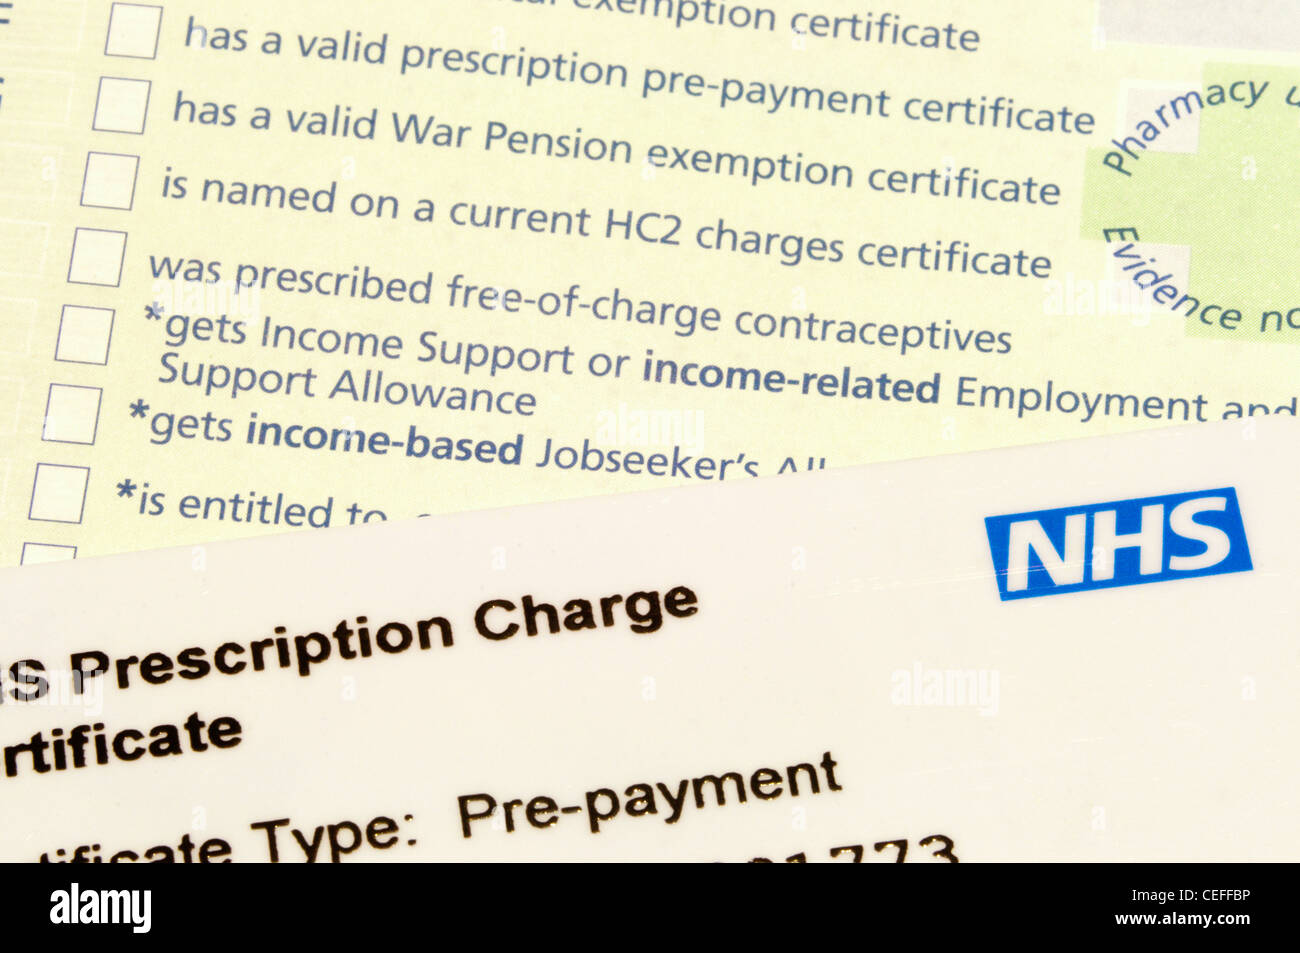 NHS pre-payment prescription charge card with a prescription in the background. - Stock Image